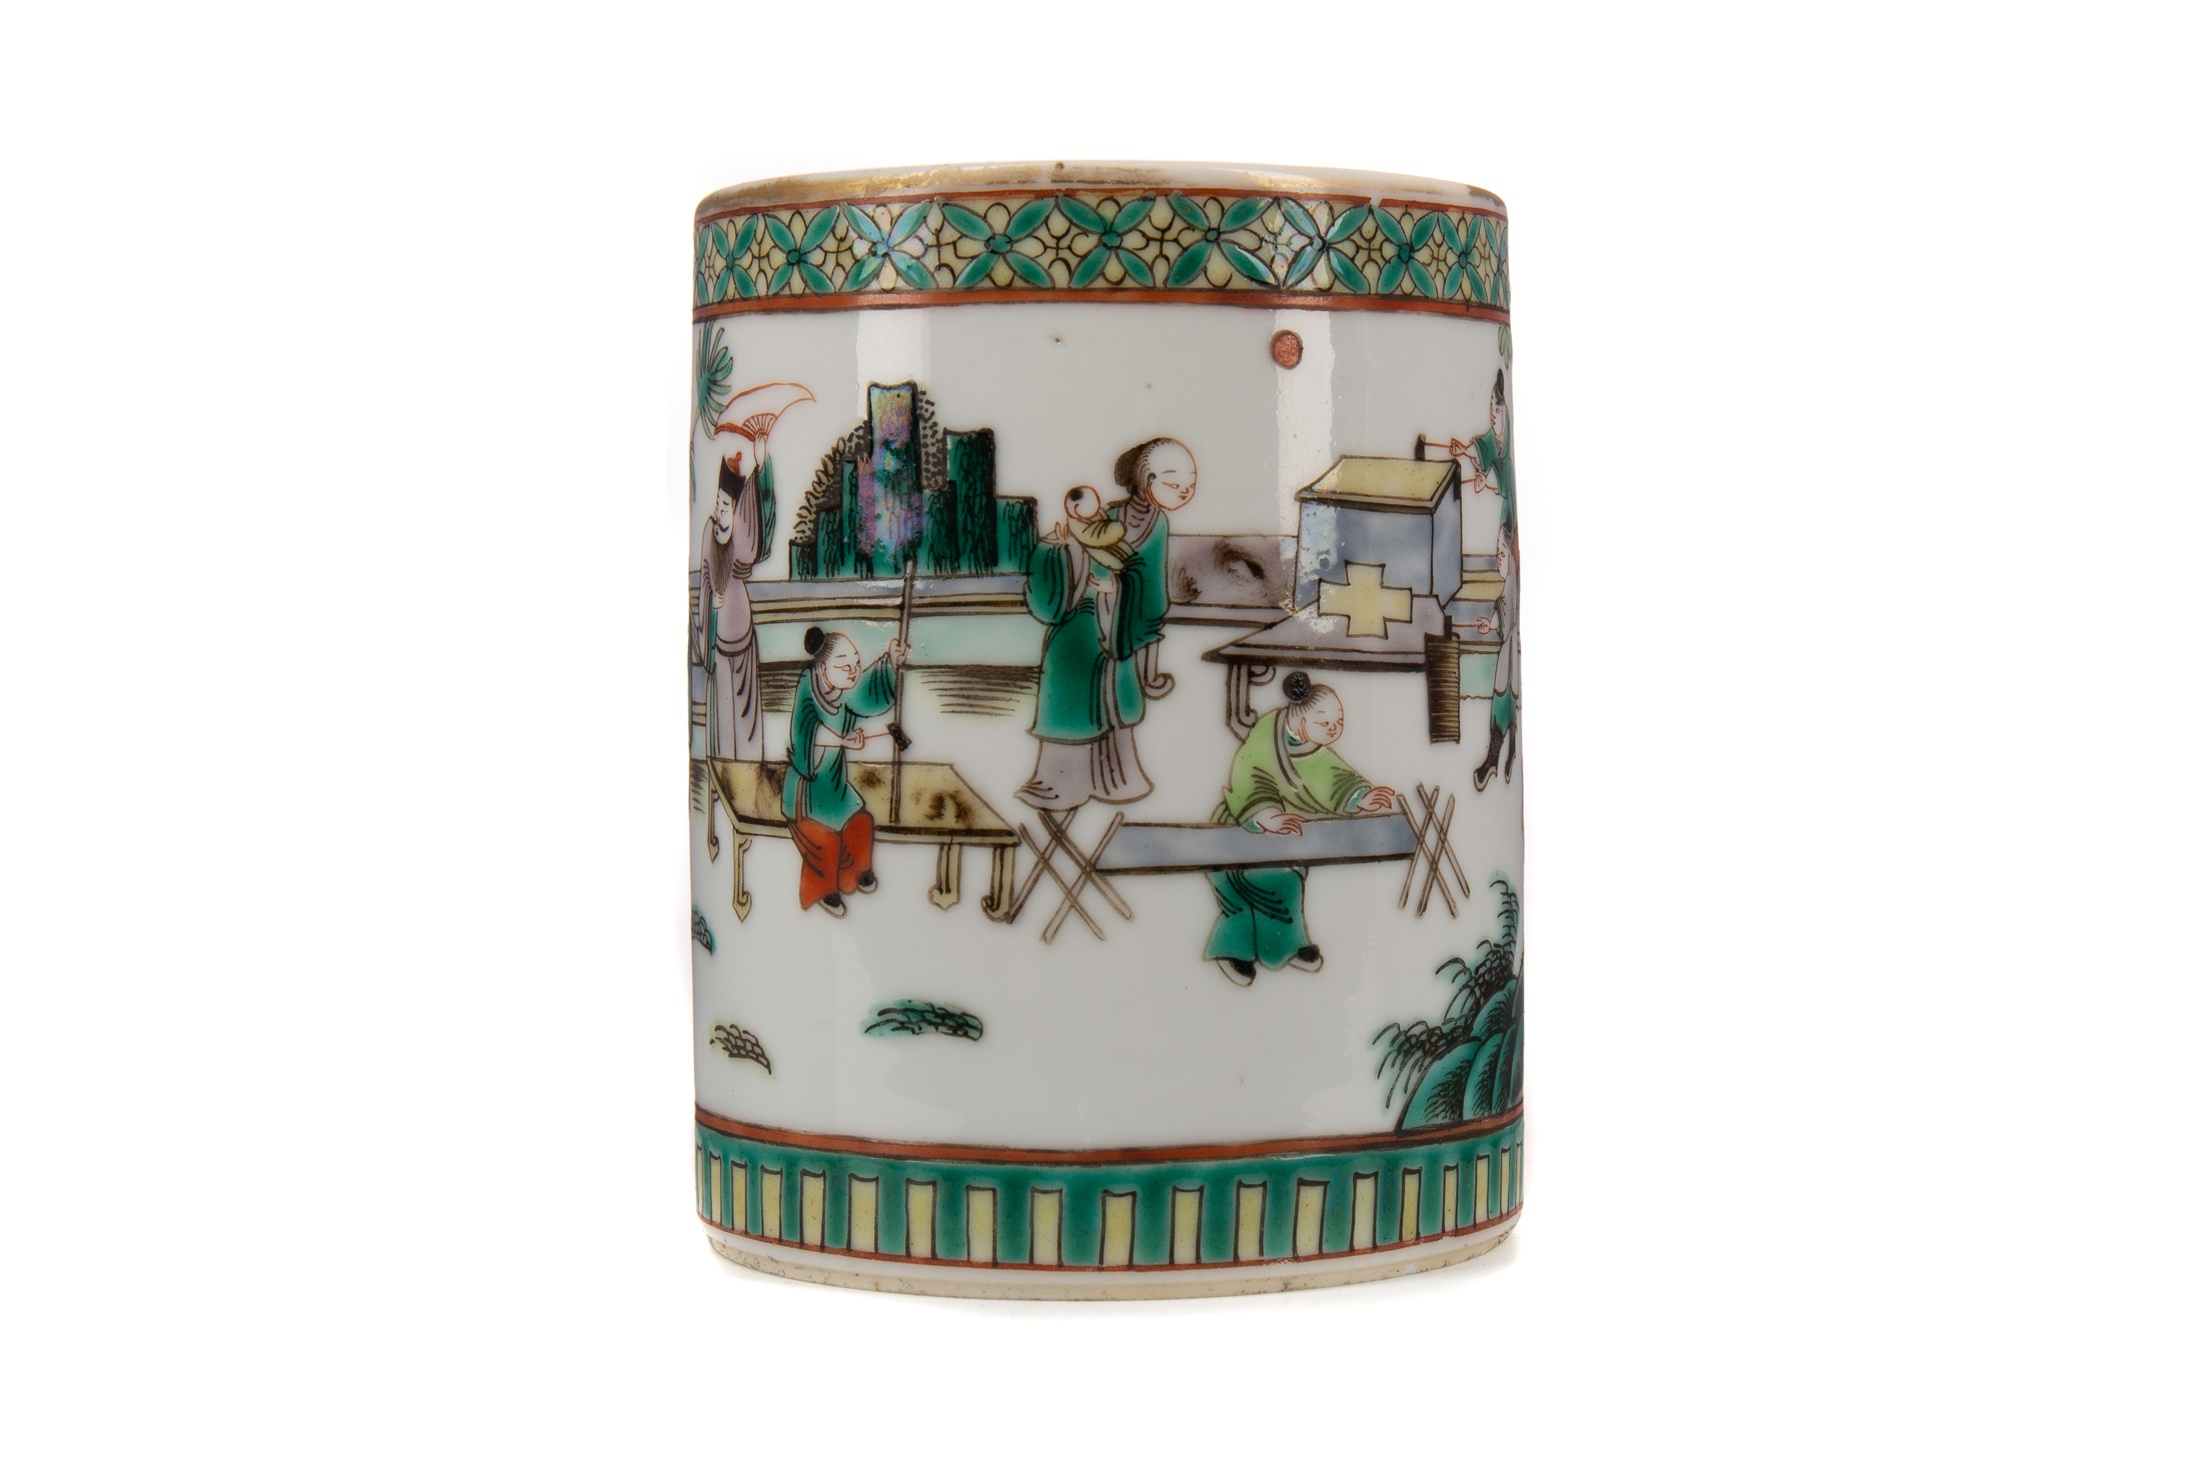 AN EARLY 20TH CENTURY CHINESE FAMILLE VERTE BRUSH POT